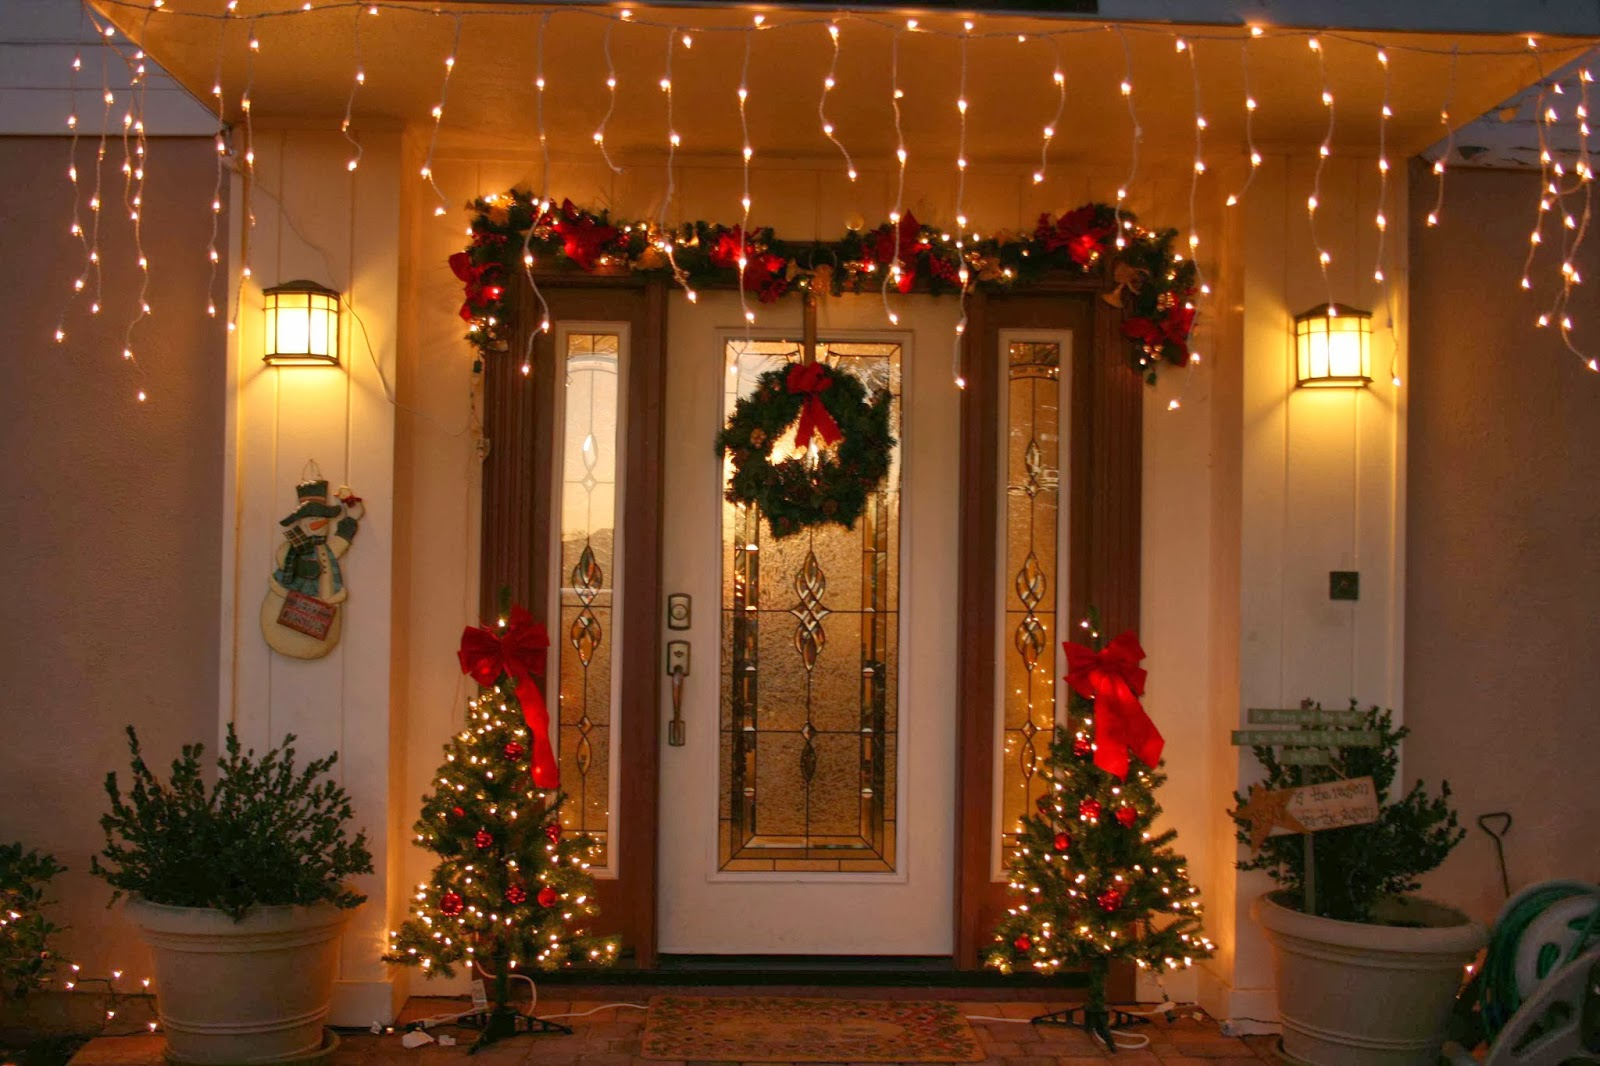 Decoration and ideas decorating front door for christmas decorating front door for christmas rubansaba